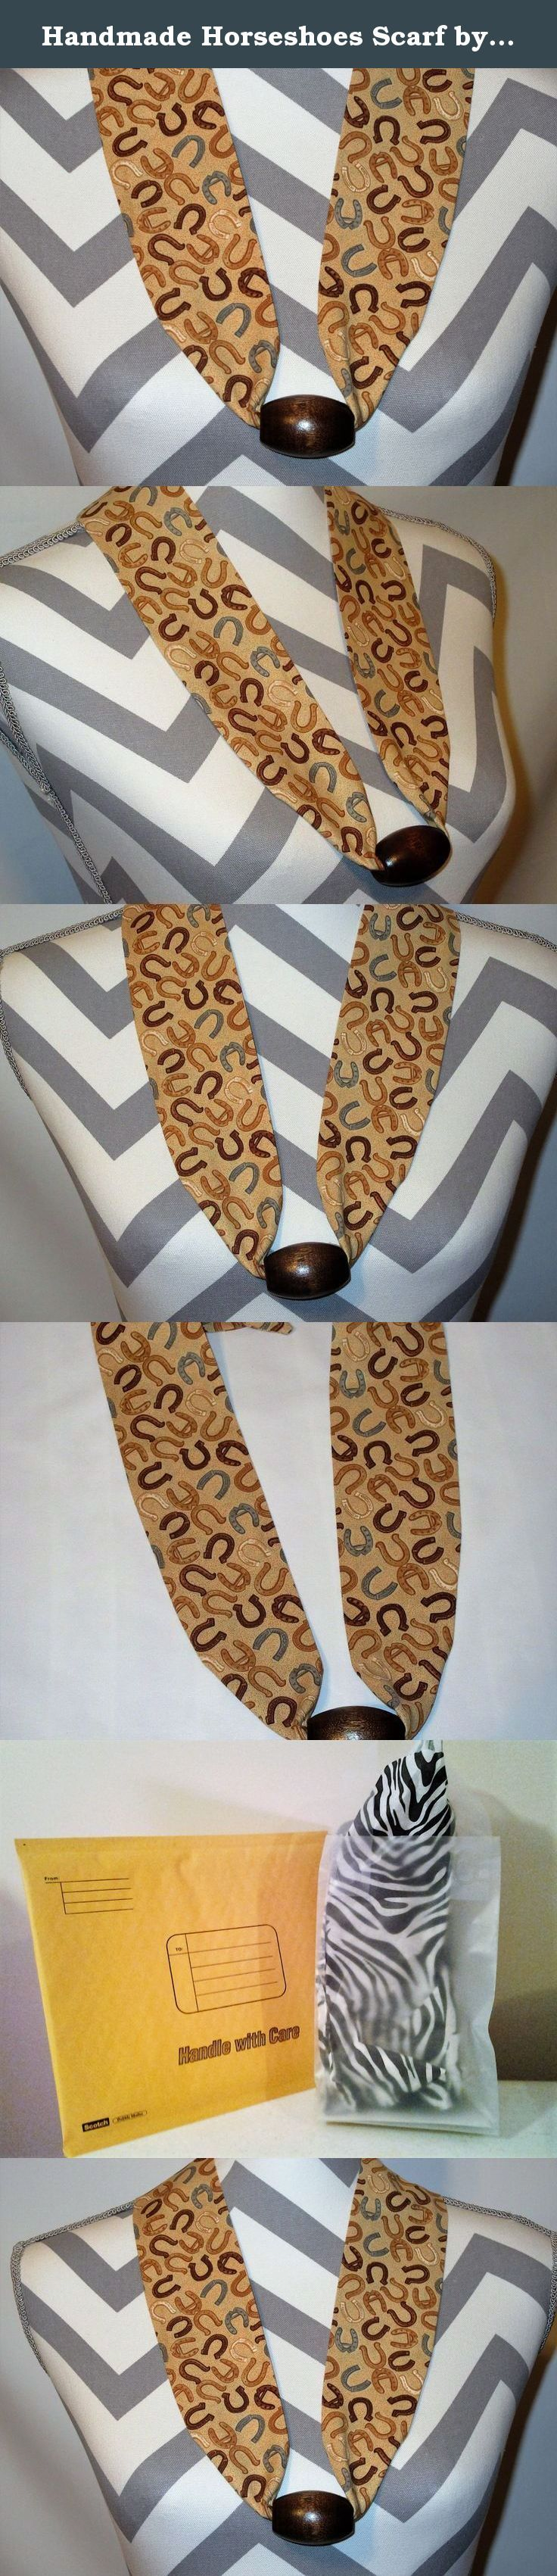 Handmade Horseshoes Scarf by Ladies Fashion Collars Unique No Tie Design with Wood Brown Bead One Size Fits All Lucky Horseshoes on Beige Background Hand Crafted USA. Handmade Ladies Fashion Collars Fabric Scarf Necklace Lucky Horseshoes in Brown tones on a Beige Cotton Fabric with Brown Wood Bead. One Size Fits All; Simply Slip it Over Your Head; Lightweight Only 1 Ounce, Bead holds decorative fabric scarf in place, complementing any neckline. No Tie; No Fuss; No Clasp; Fun and Easy to...